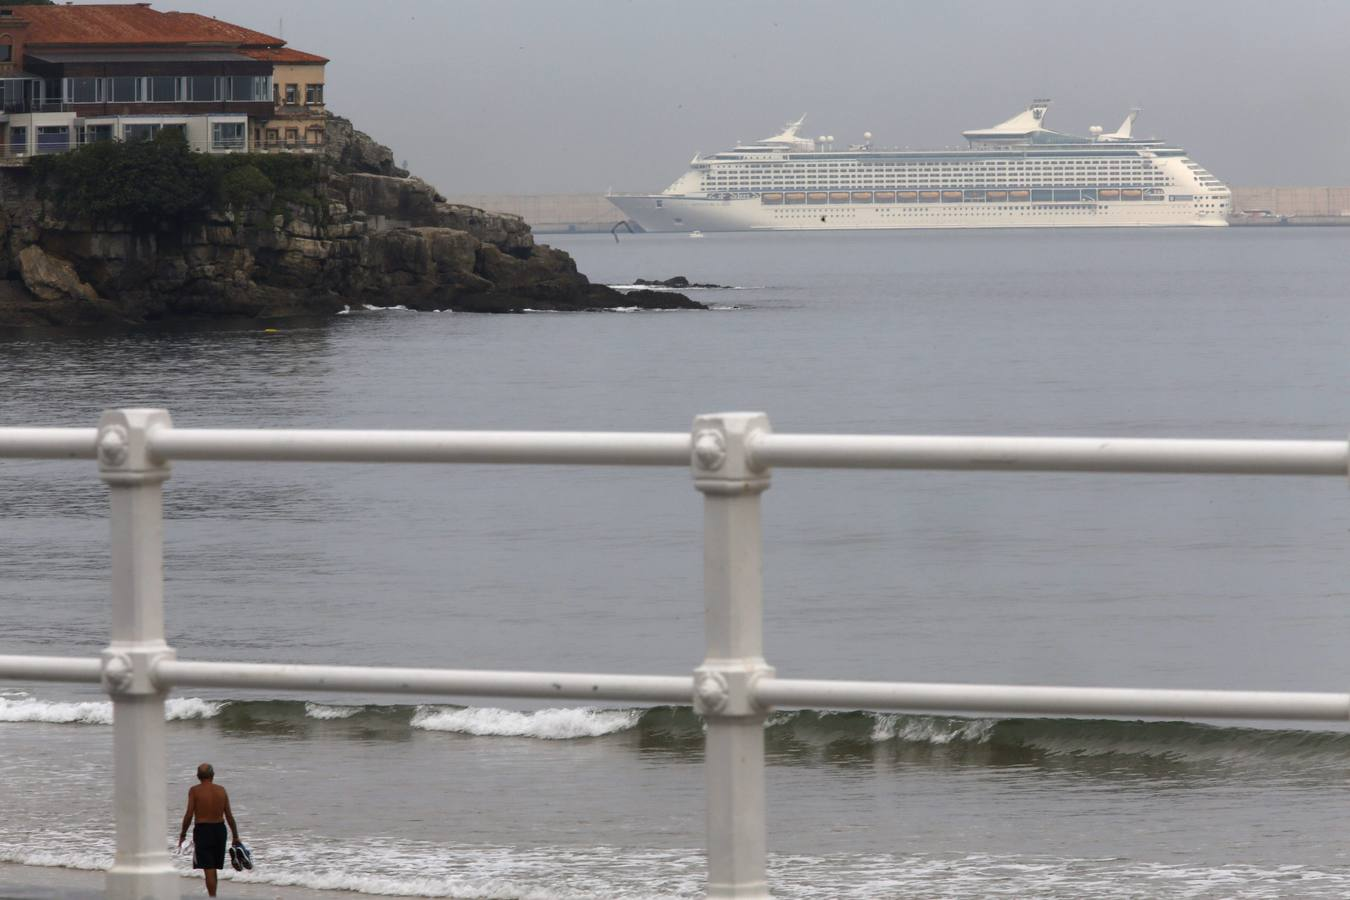 El 'Adventure of the Seas' atraca en Gijón